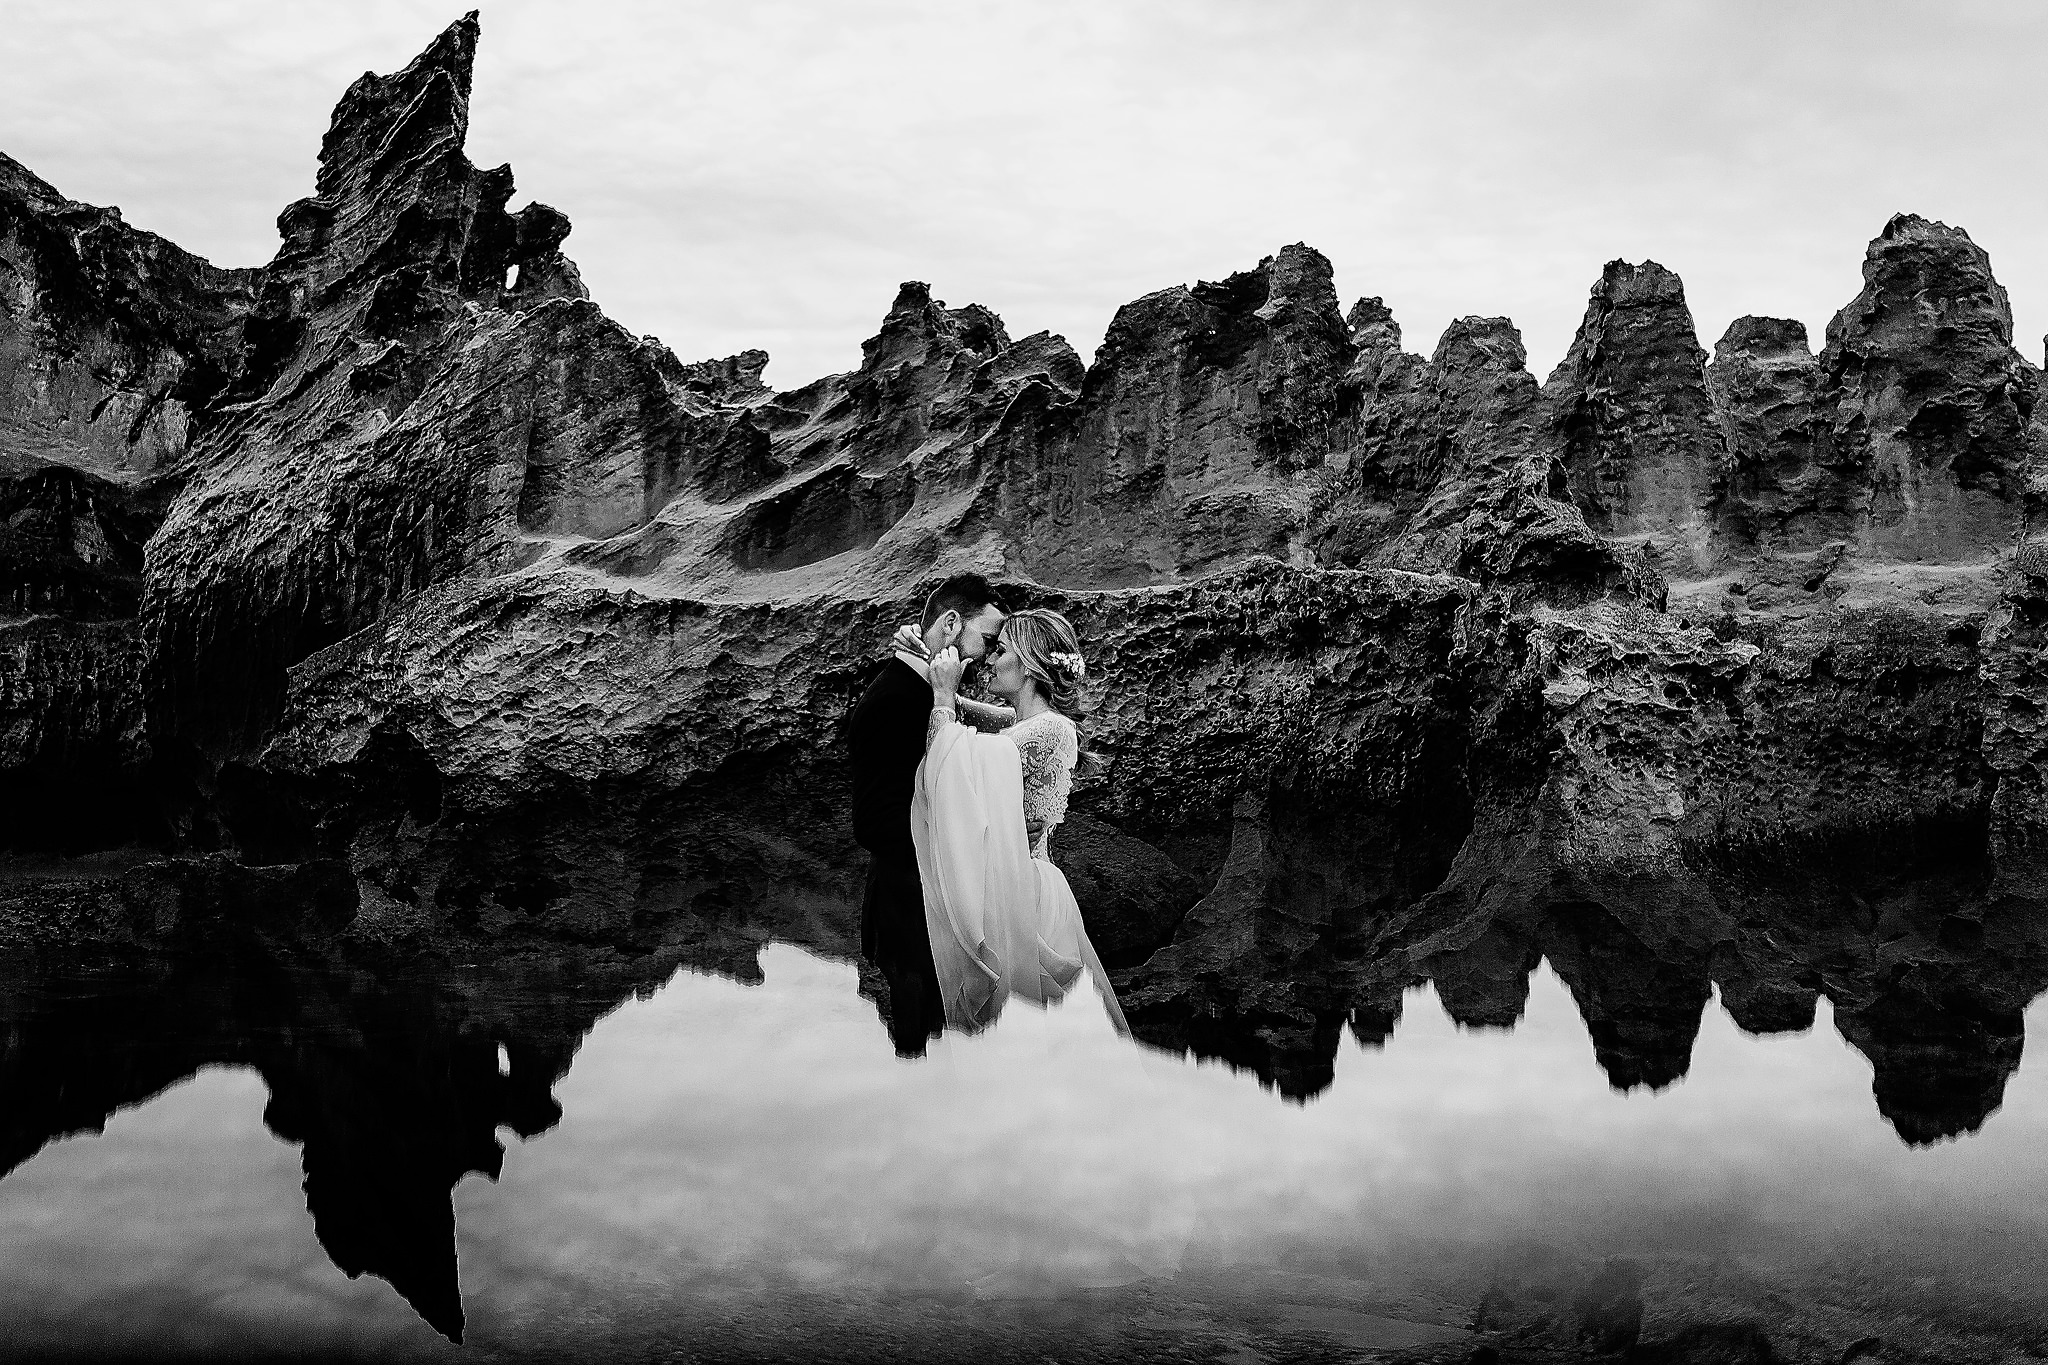 couple-walking-on-air-ruan-redelinghuys-photography